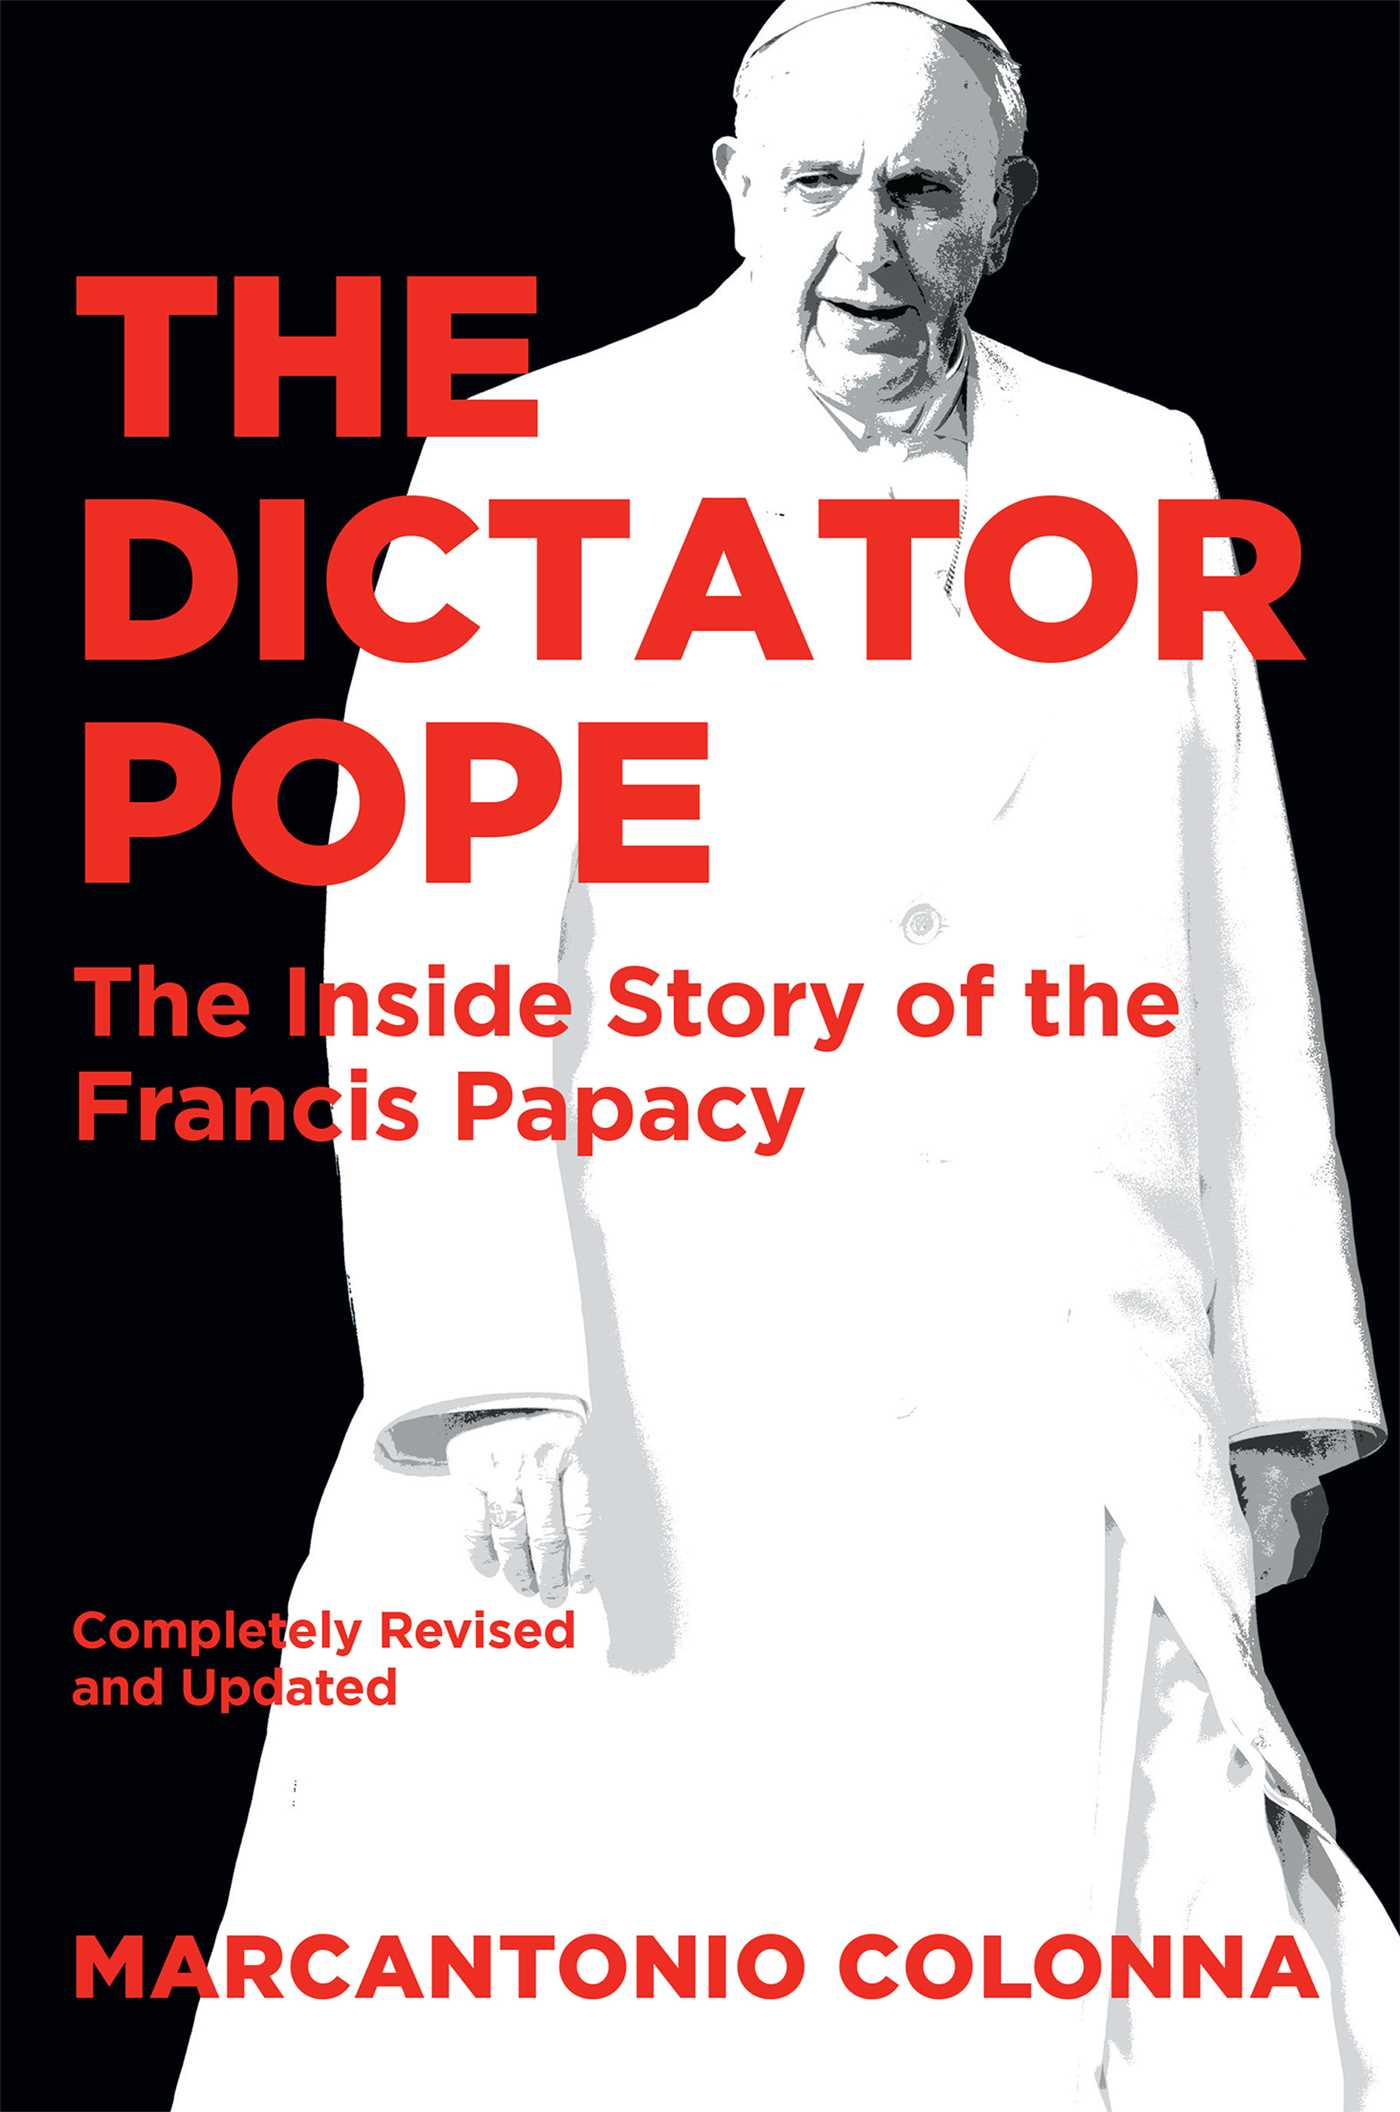 The dictator pope 9781621578321 hr